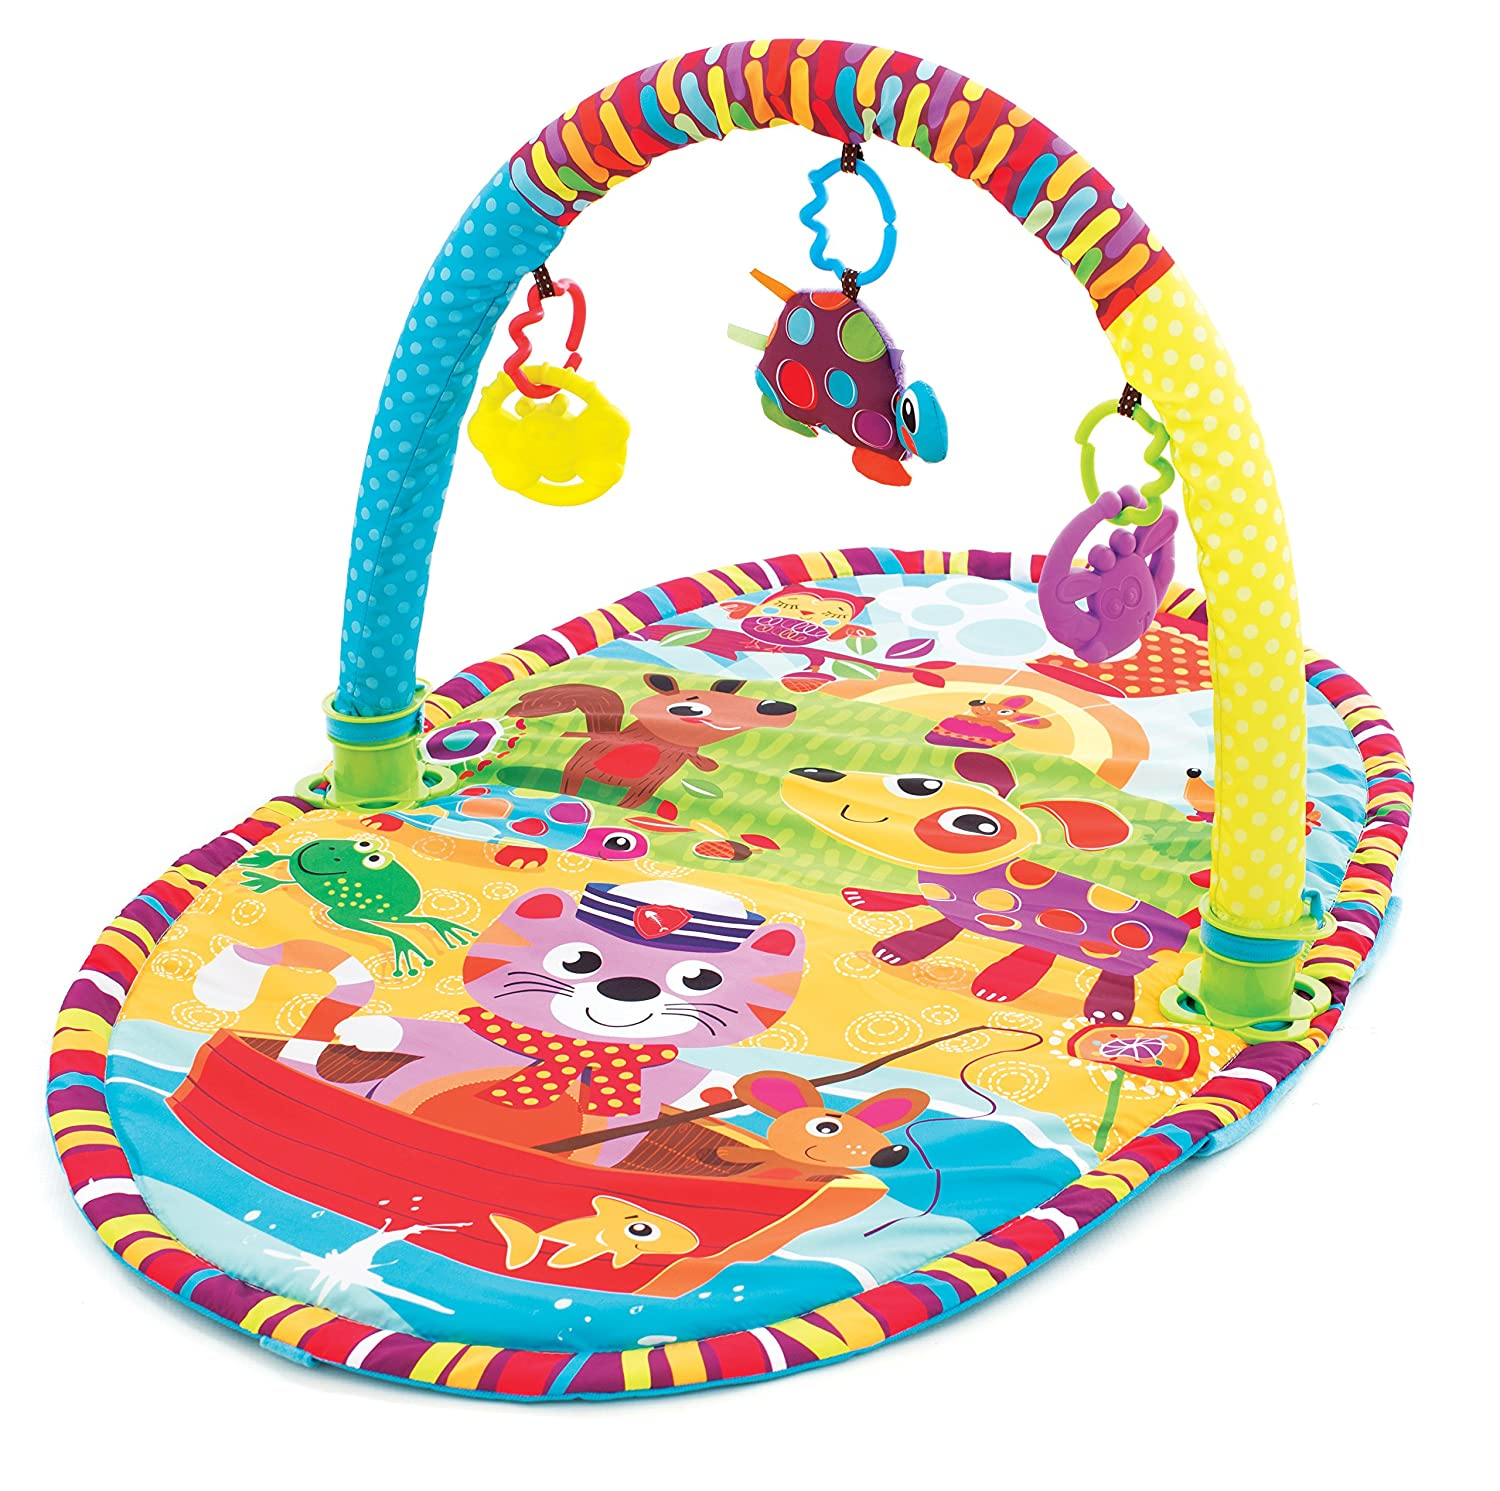 Playgro Play in the Park Activity Gym for baby infant toddler children 0184213 Playgro is Encouraging Imagination with STEM//STEM for a bright future Great start for a world of learning